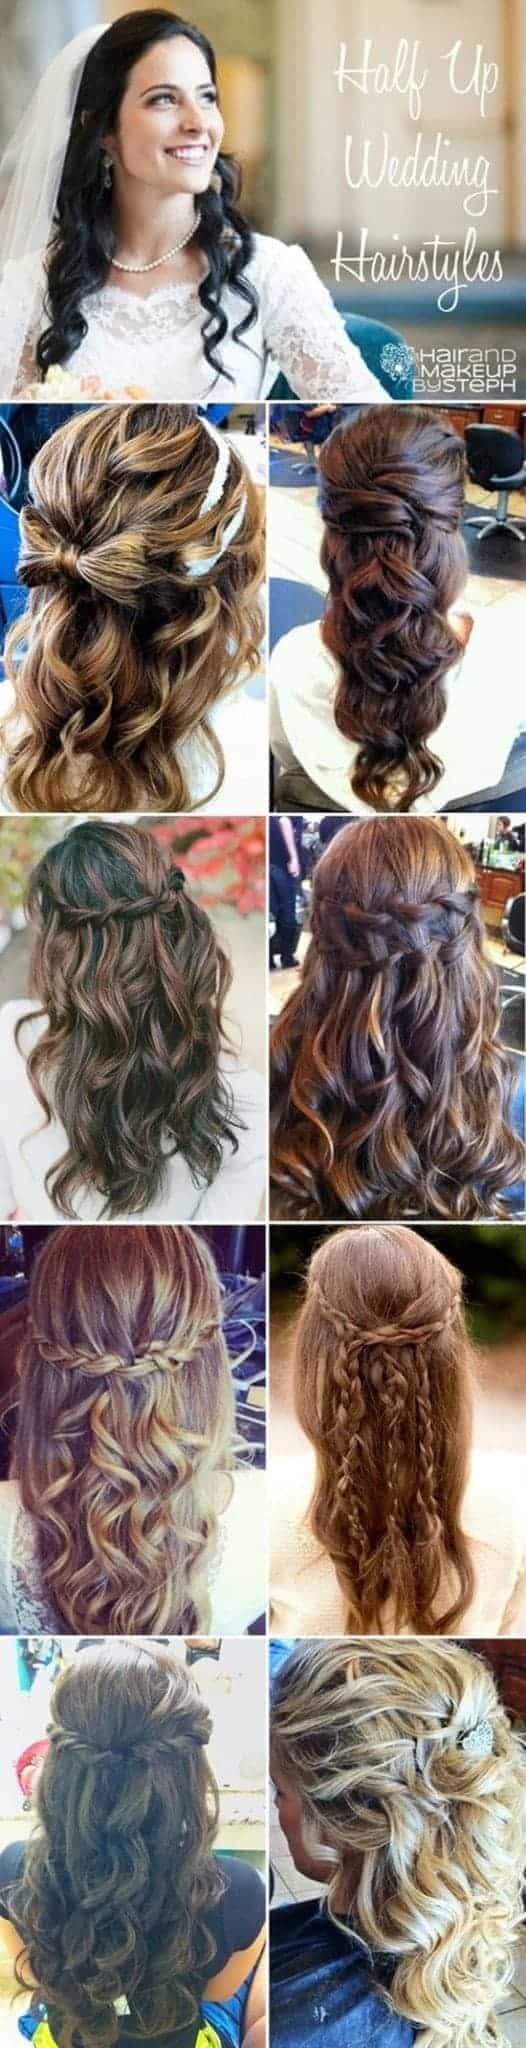 Halp Up Half down Wedding Hairstyles for Different Hair